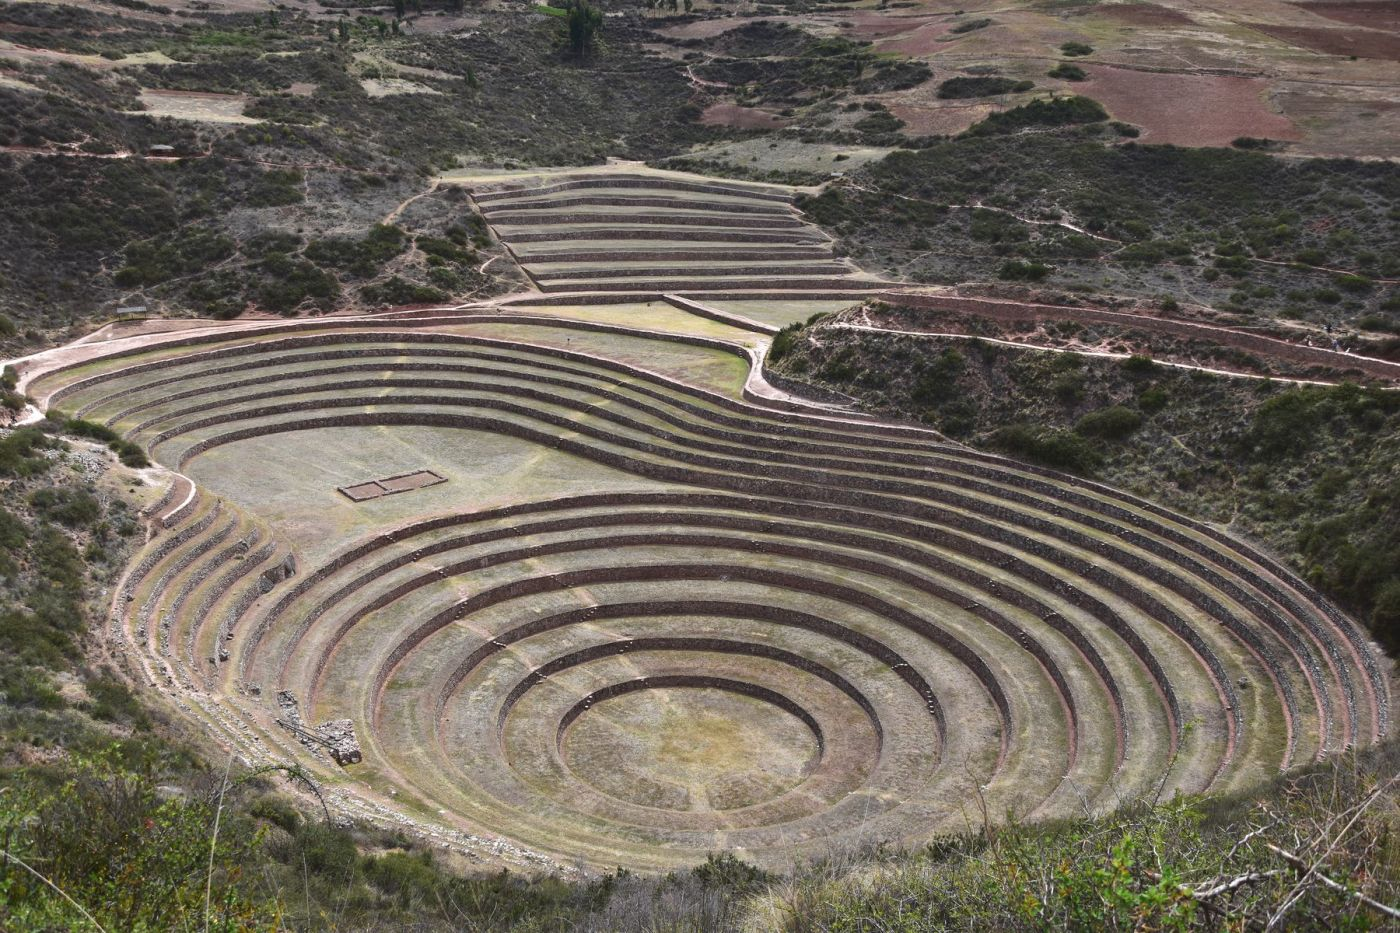 Moray le laboratoire de cultures Inca